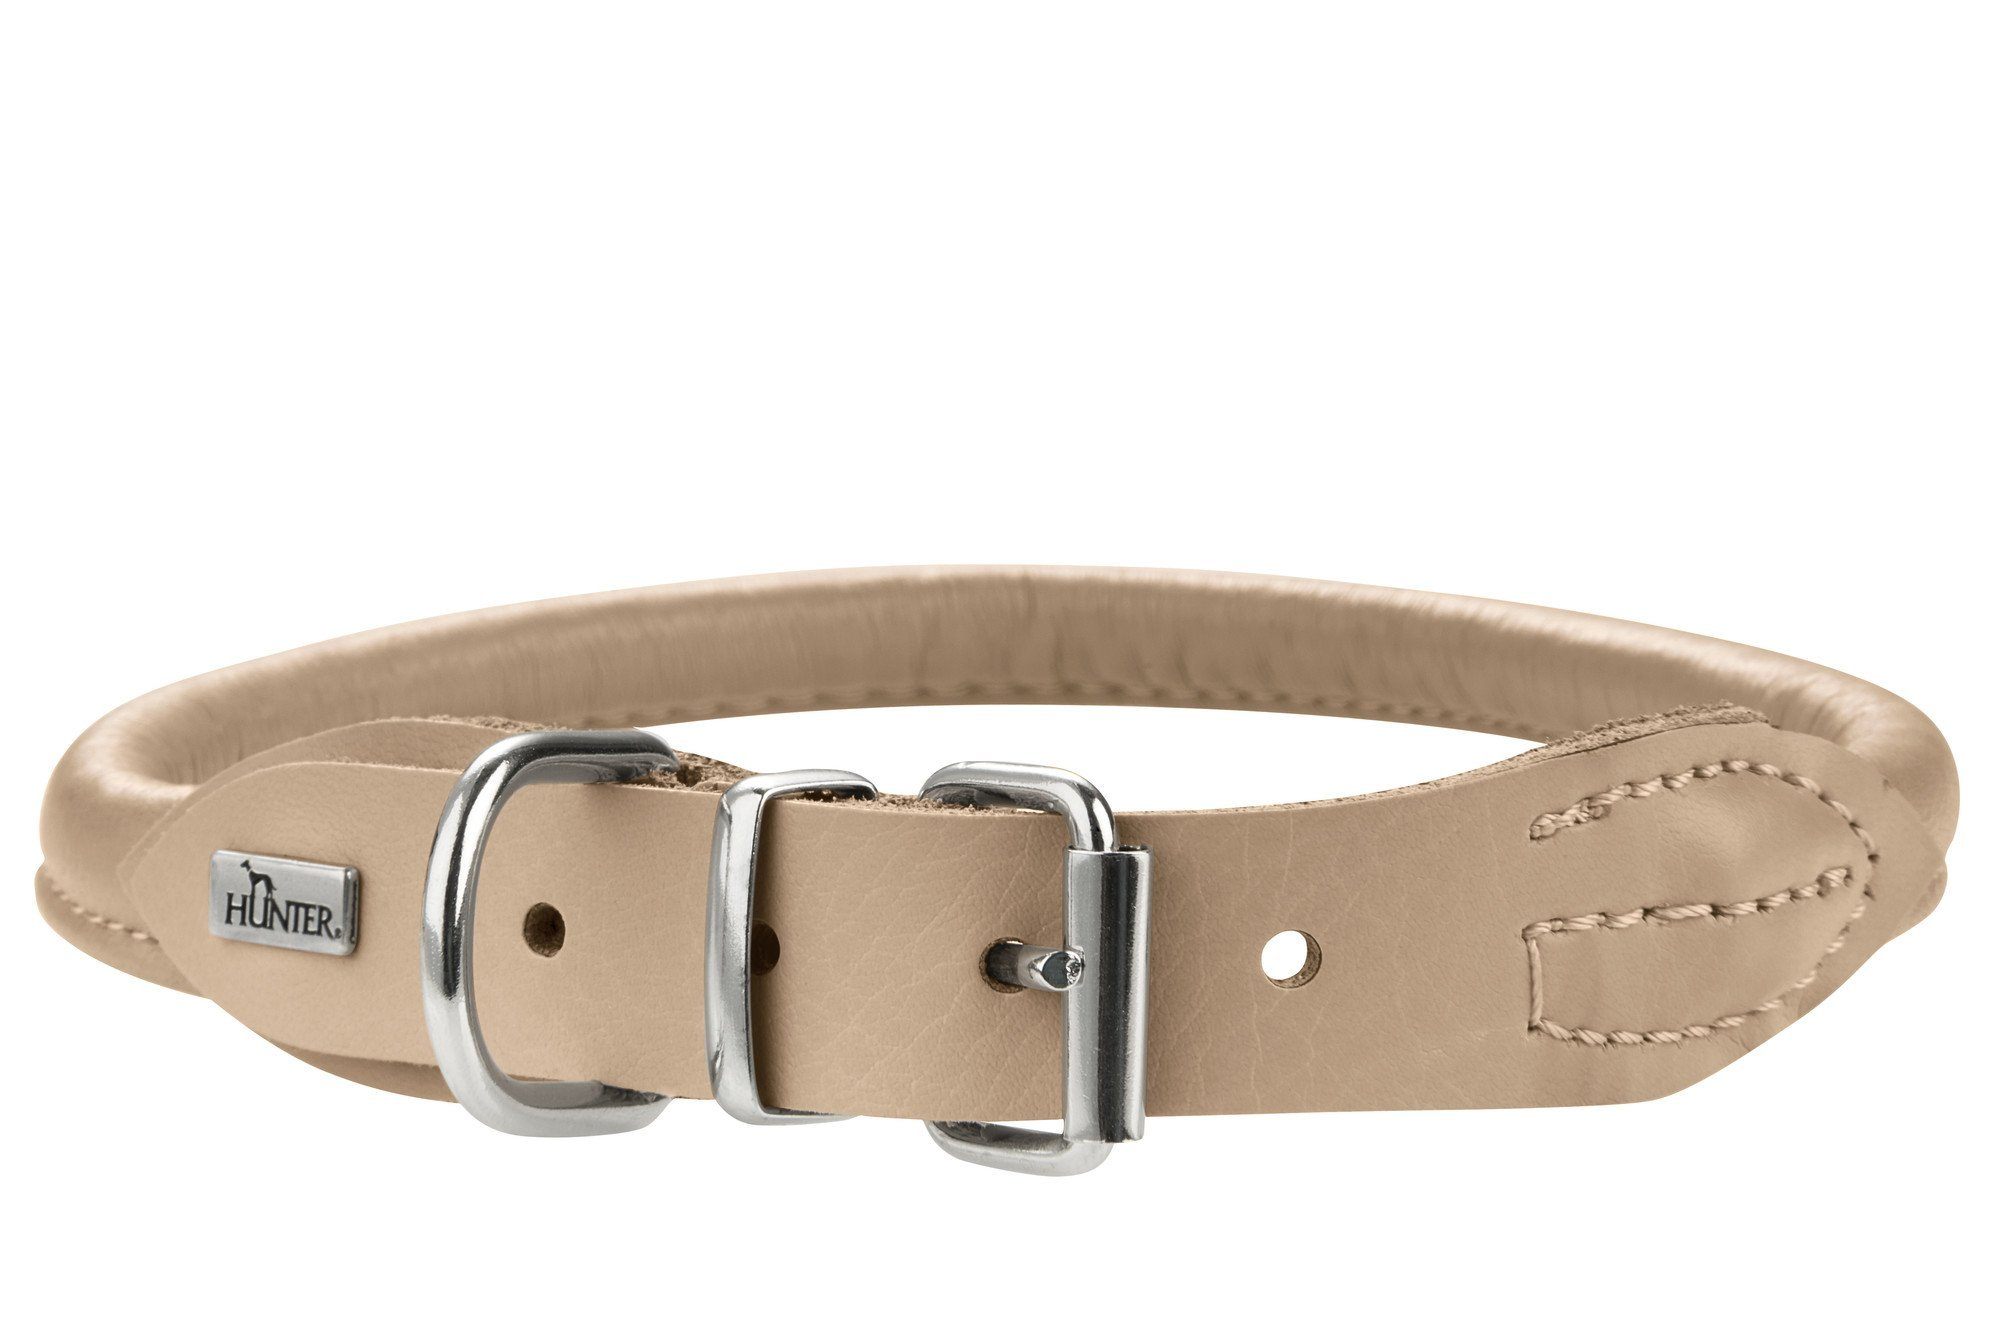 Hunter HT61170 Round & Soft Elk Leather Collar, One Size by Hunter